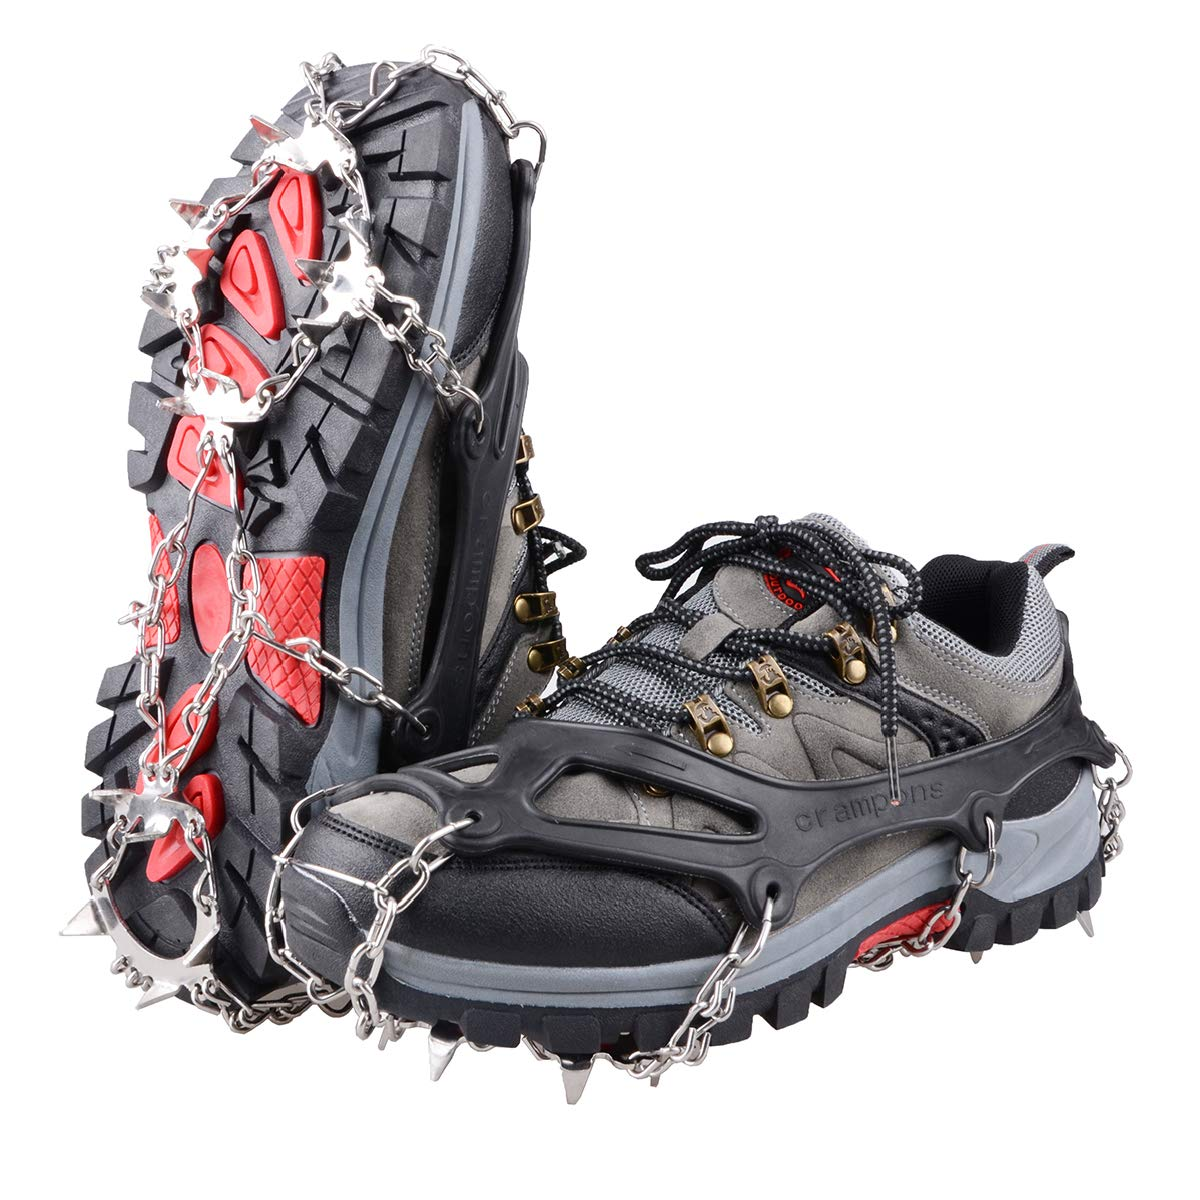 TRIWONDER Ice Snow Grips Over Shoe/Boot Traction Cleat Rubber Spikes Slip-on Stretch Footwear Traction Anti-slip Spikes Crampons